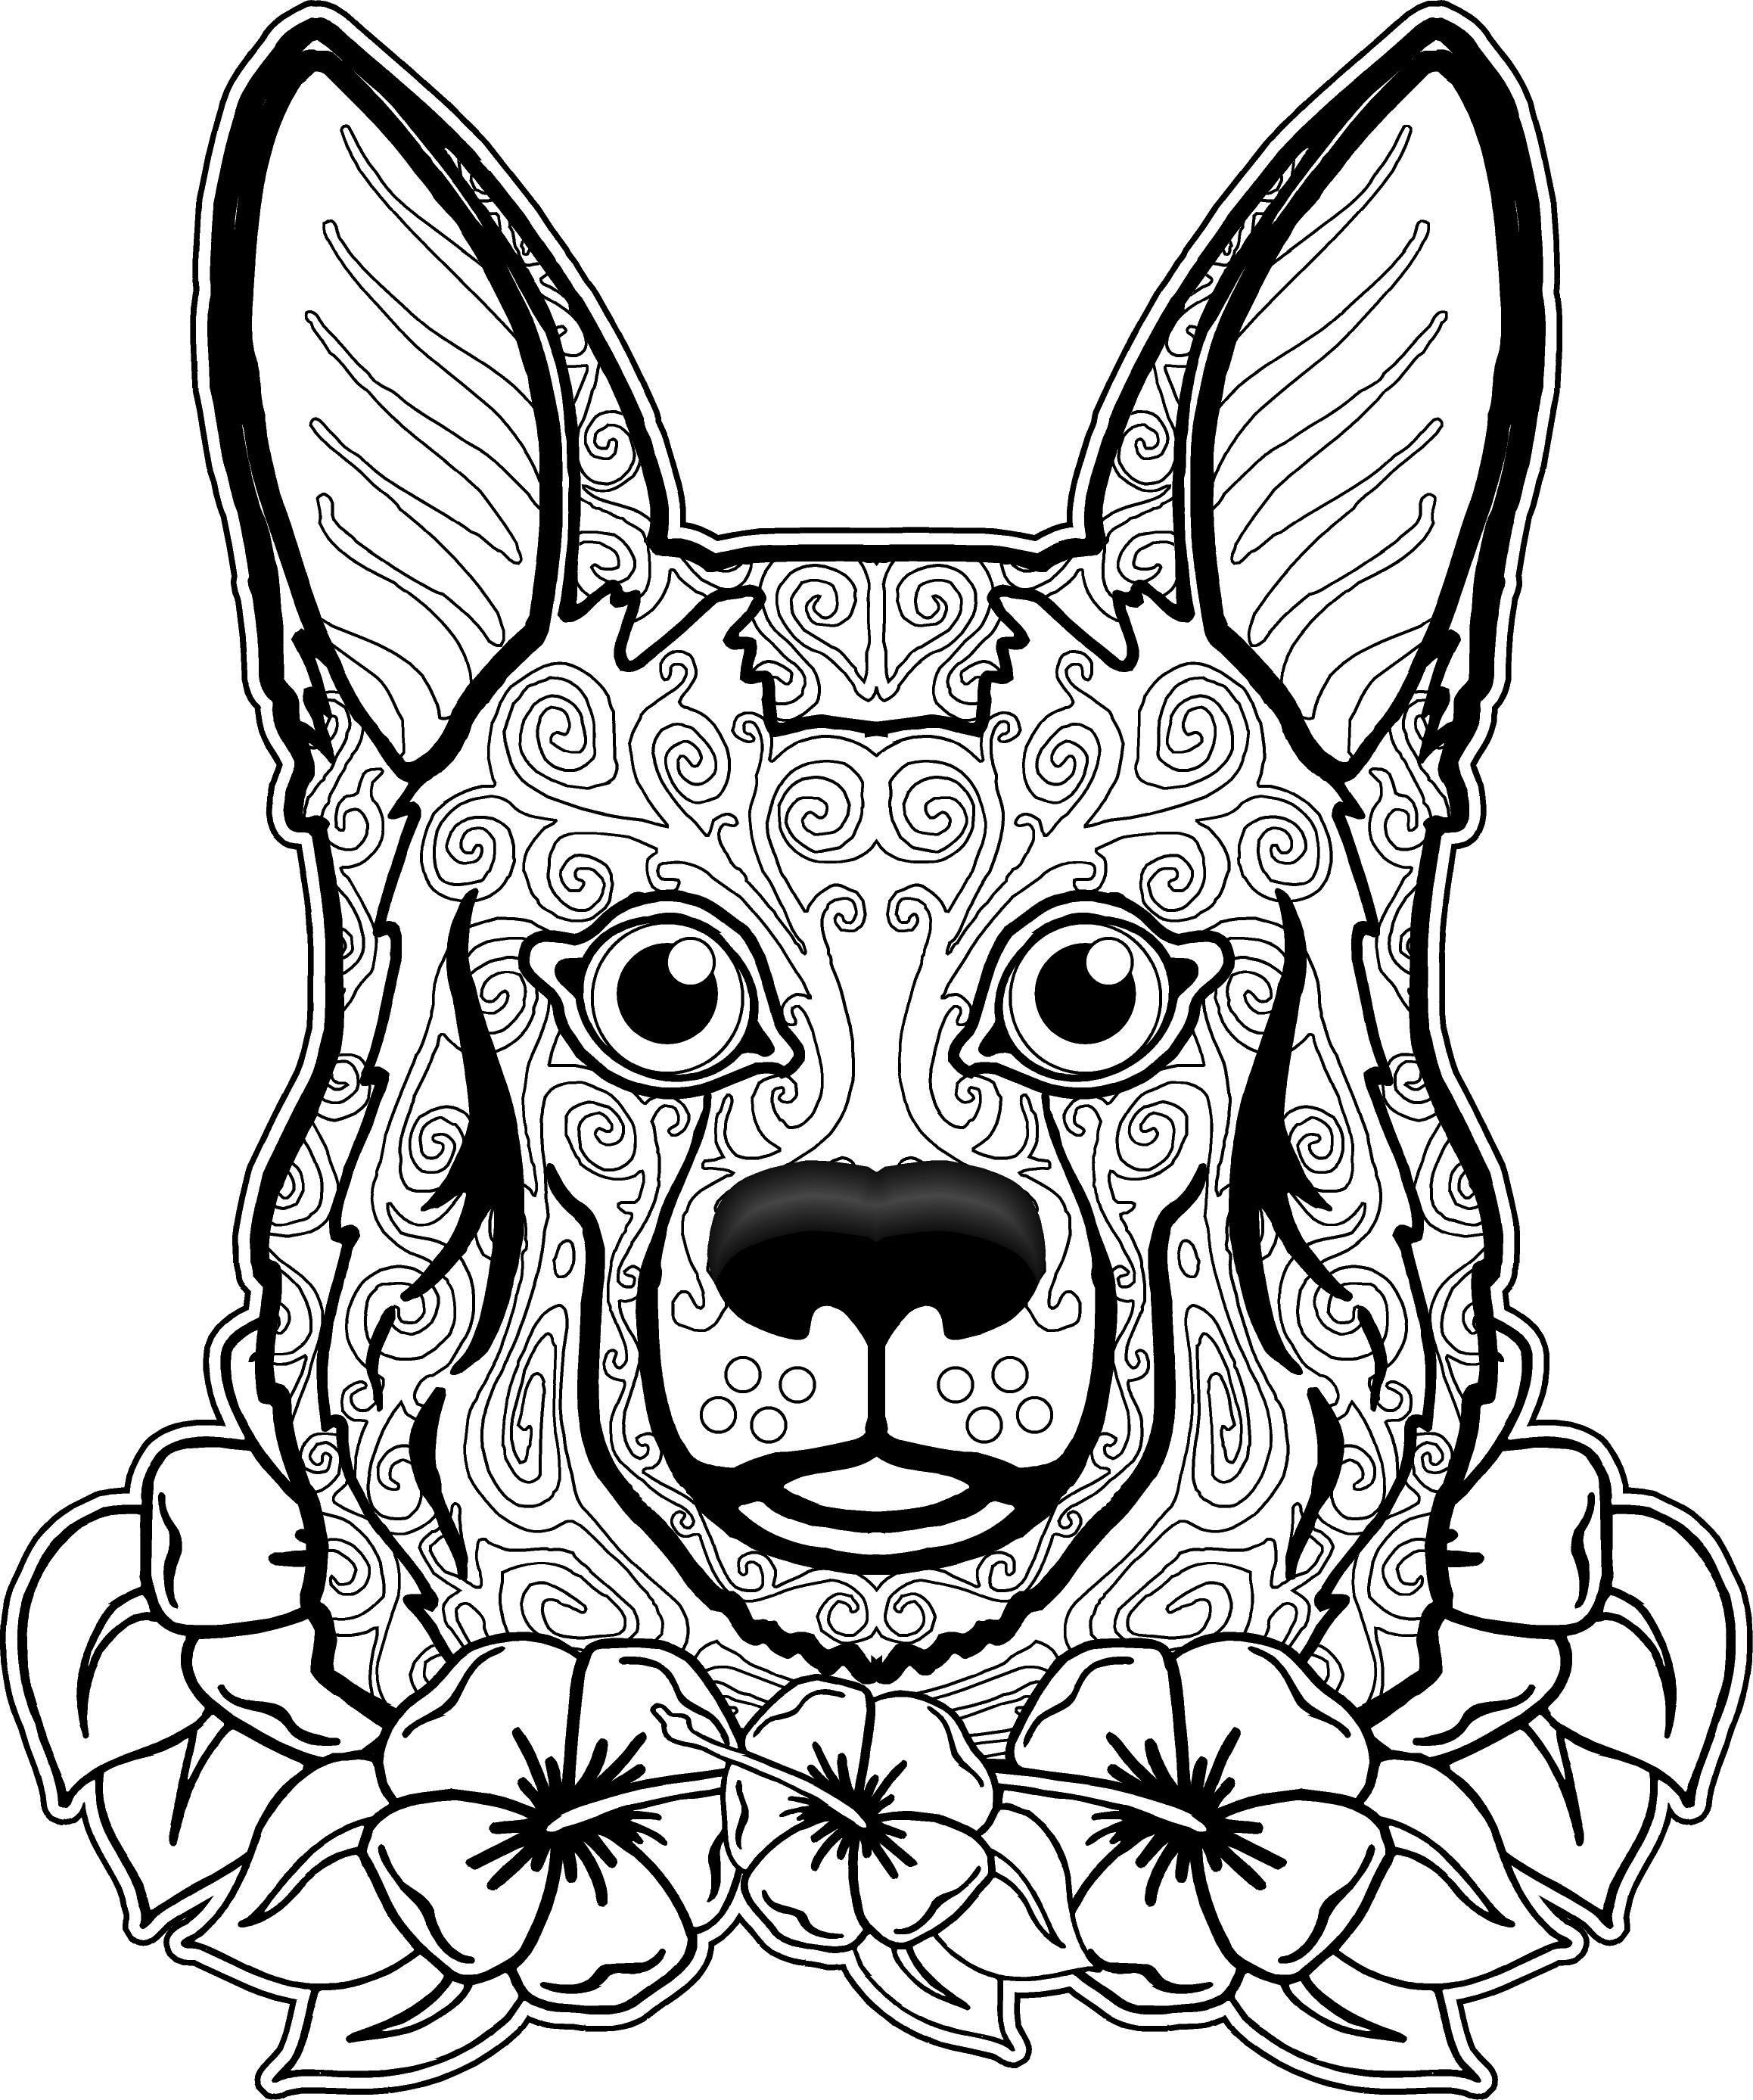 Dog Coloring Page Dog Coloring Pages Free Coloring Page Free Coloring Pages For Adults Sugar Skul Dog Coloring Page Dog Coloring Book Animal Coloring Pages